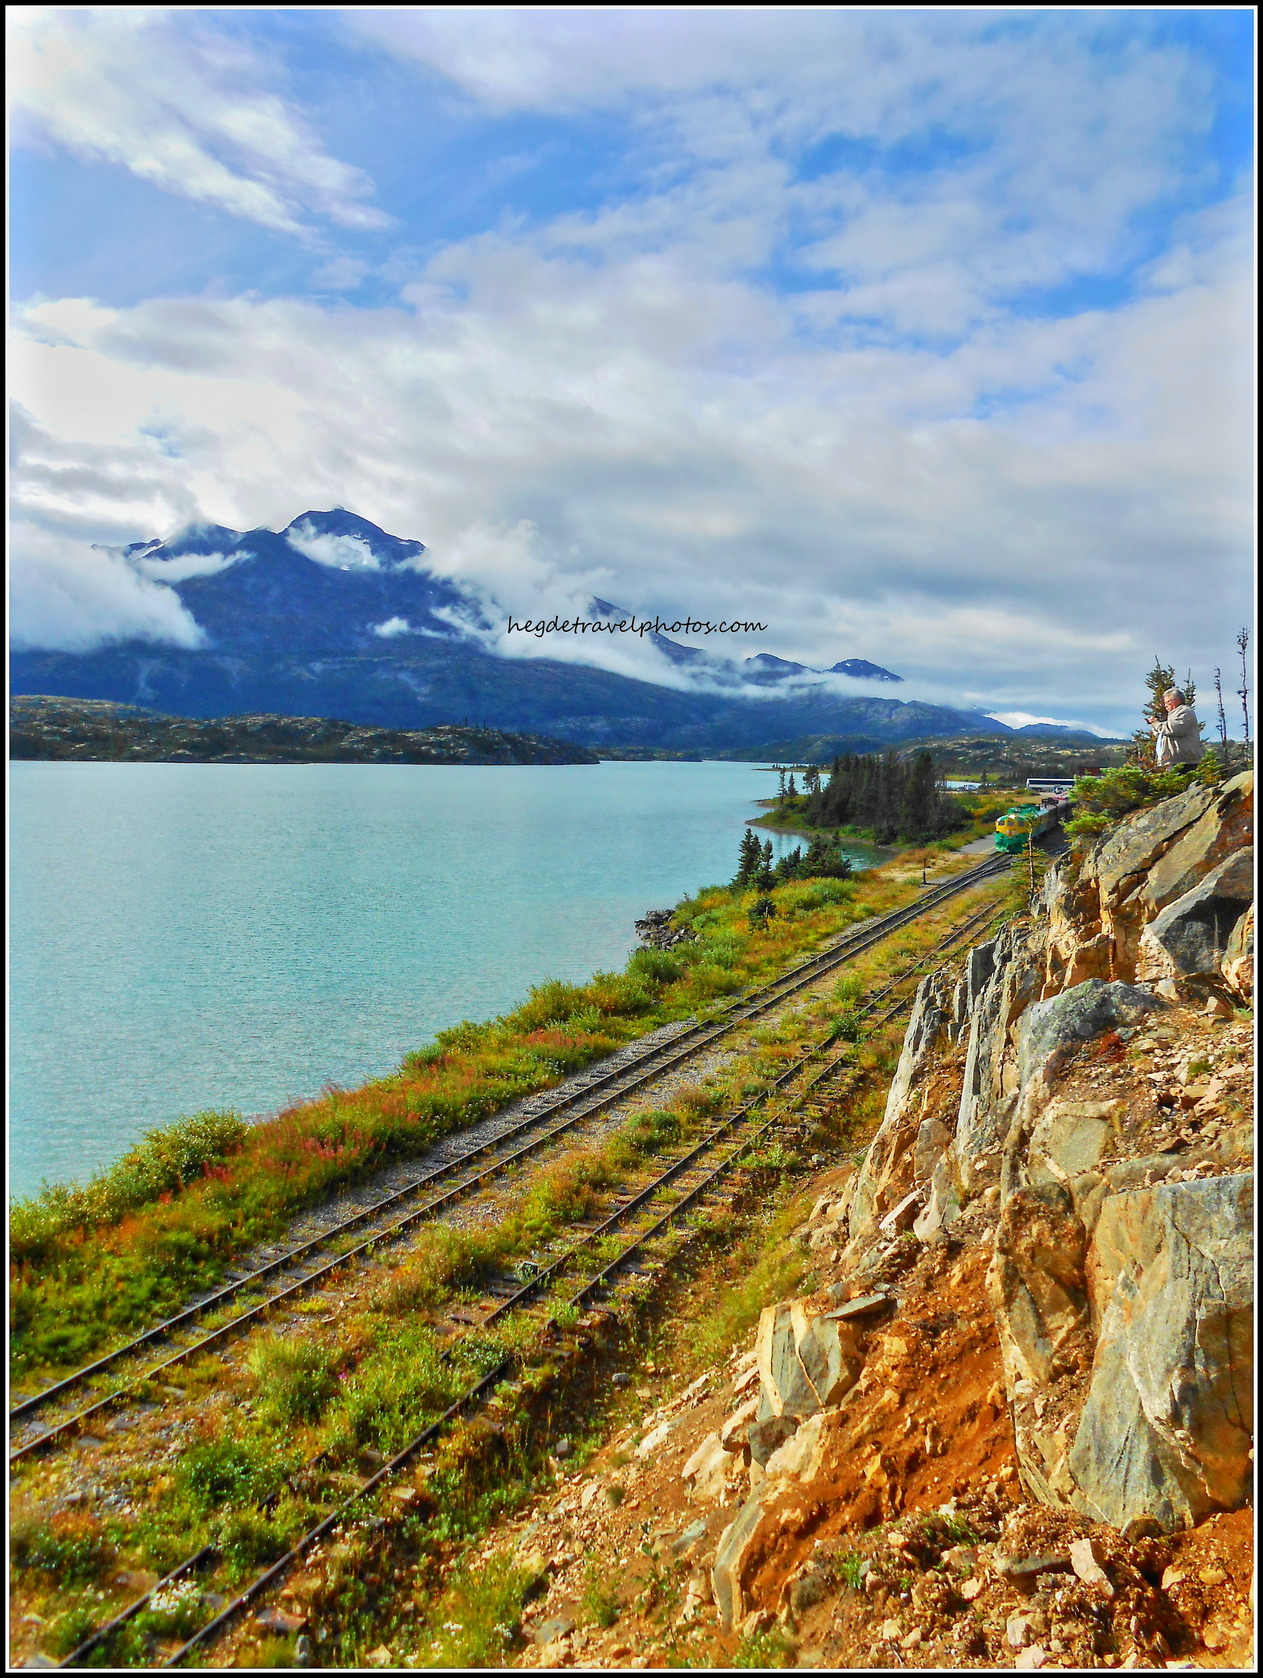 White Pass & Yukon Route Railroad, Fraser, British Columbia